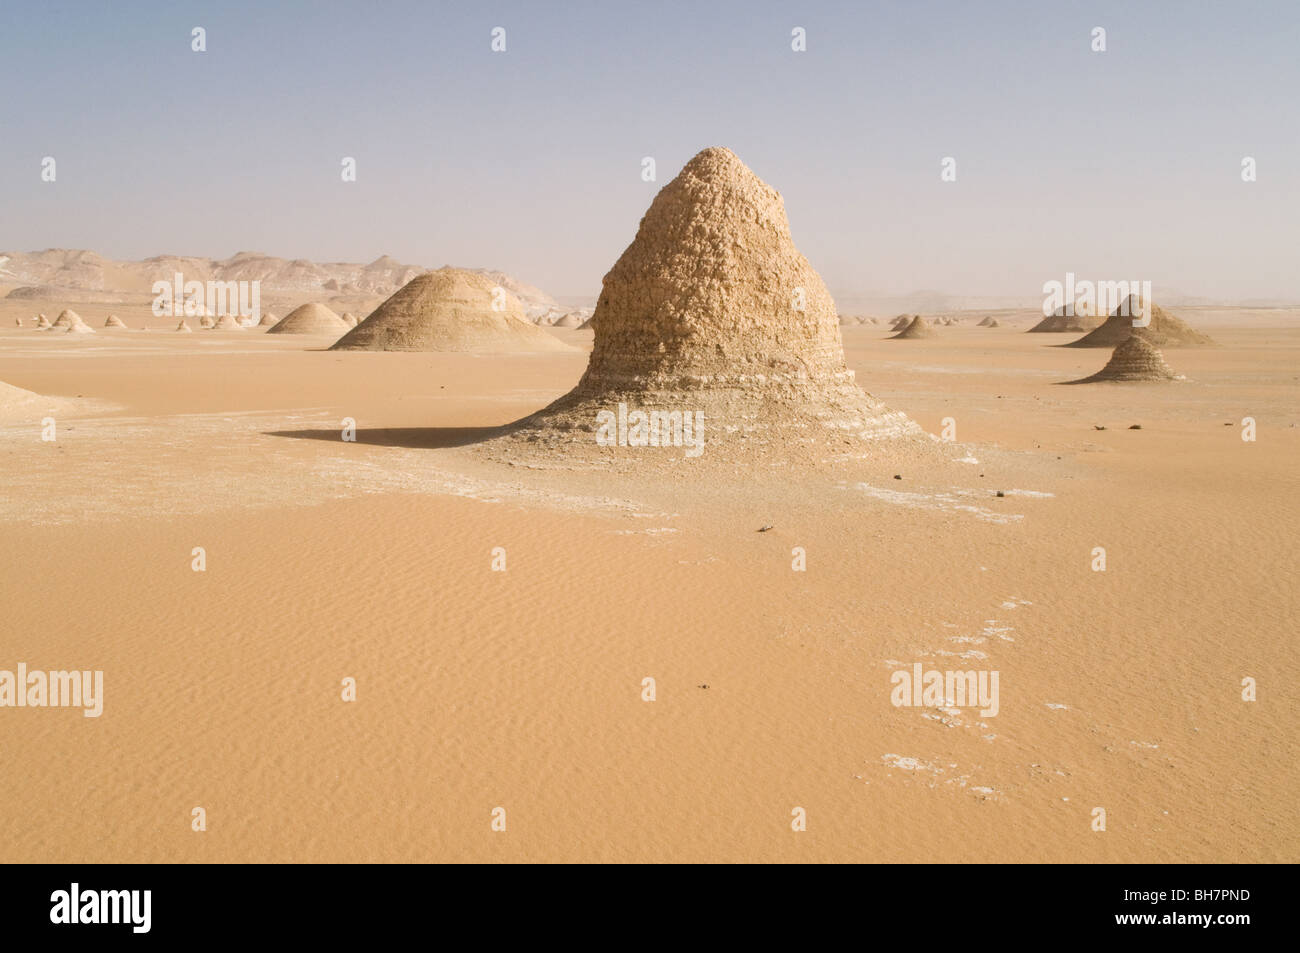 Eroded yardang mounds located in the Western Desert region of the Egyptian Sahara, between Ain Dalla and Farafra - Stock Image